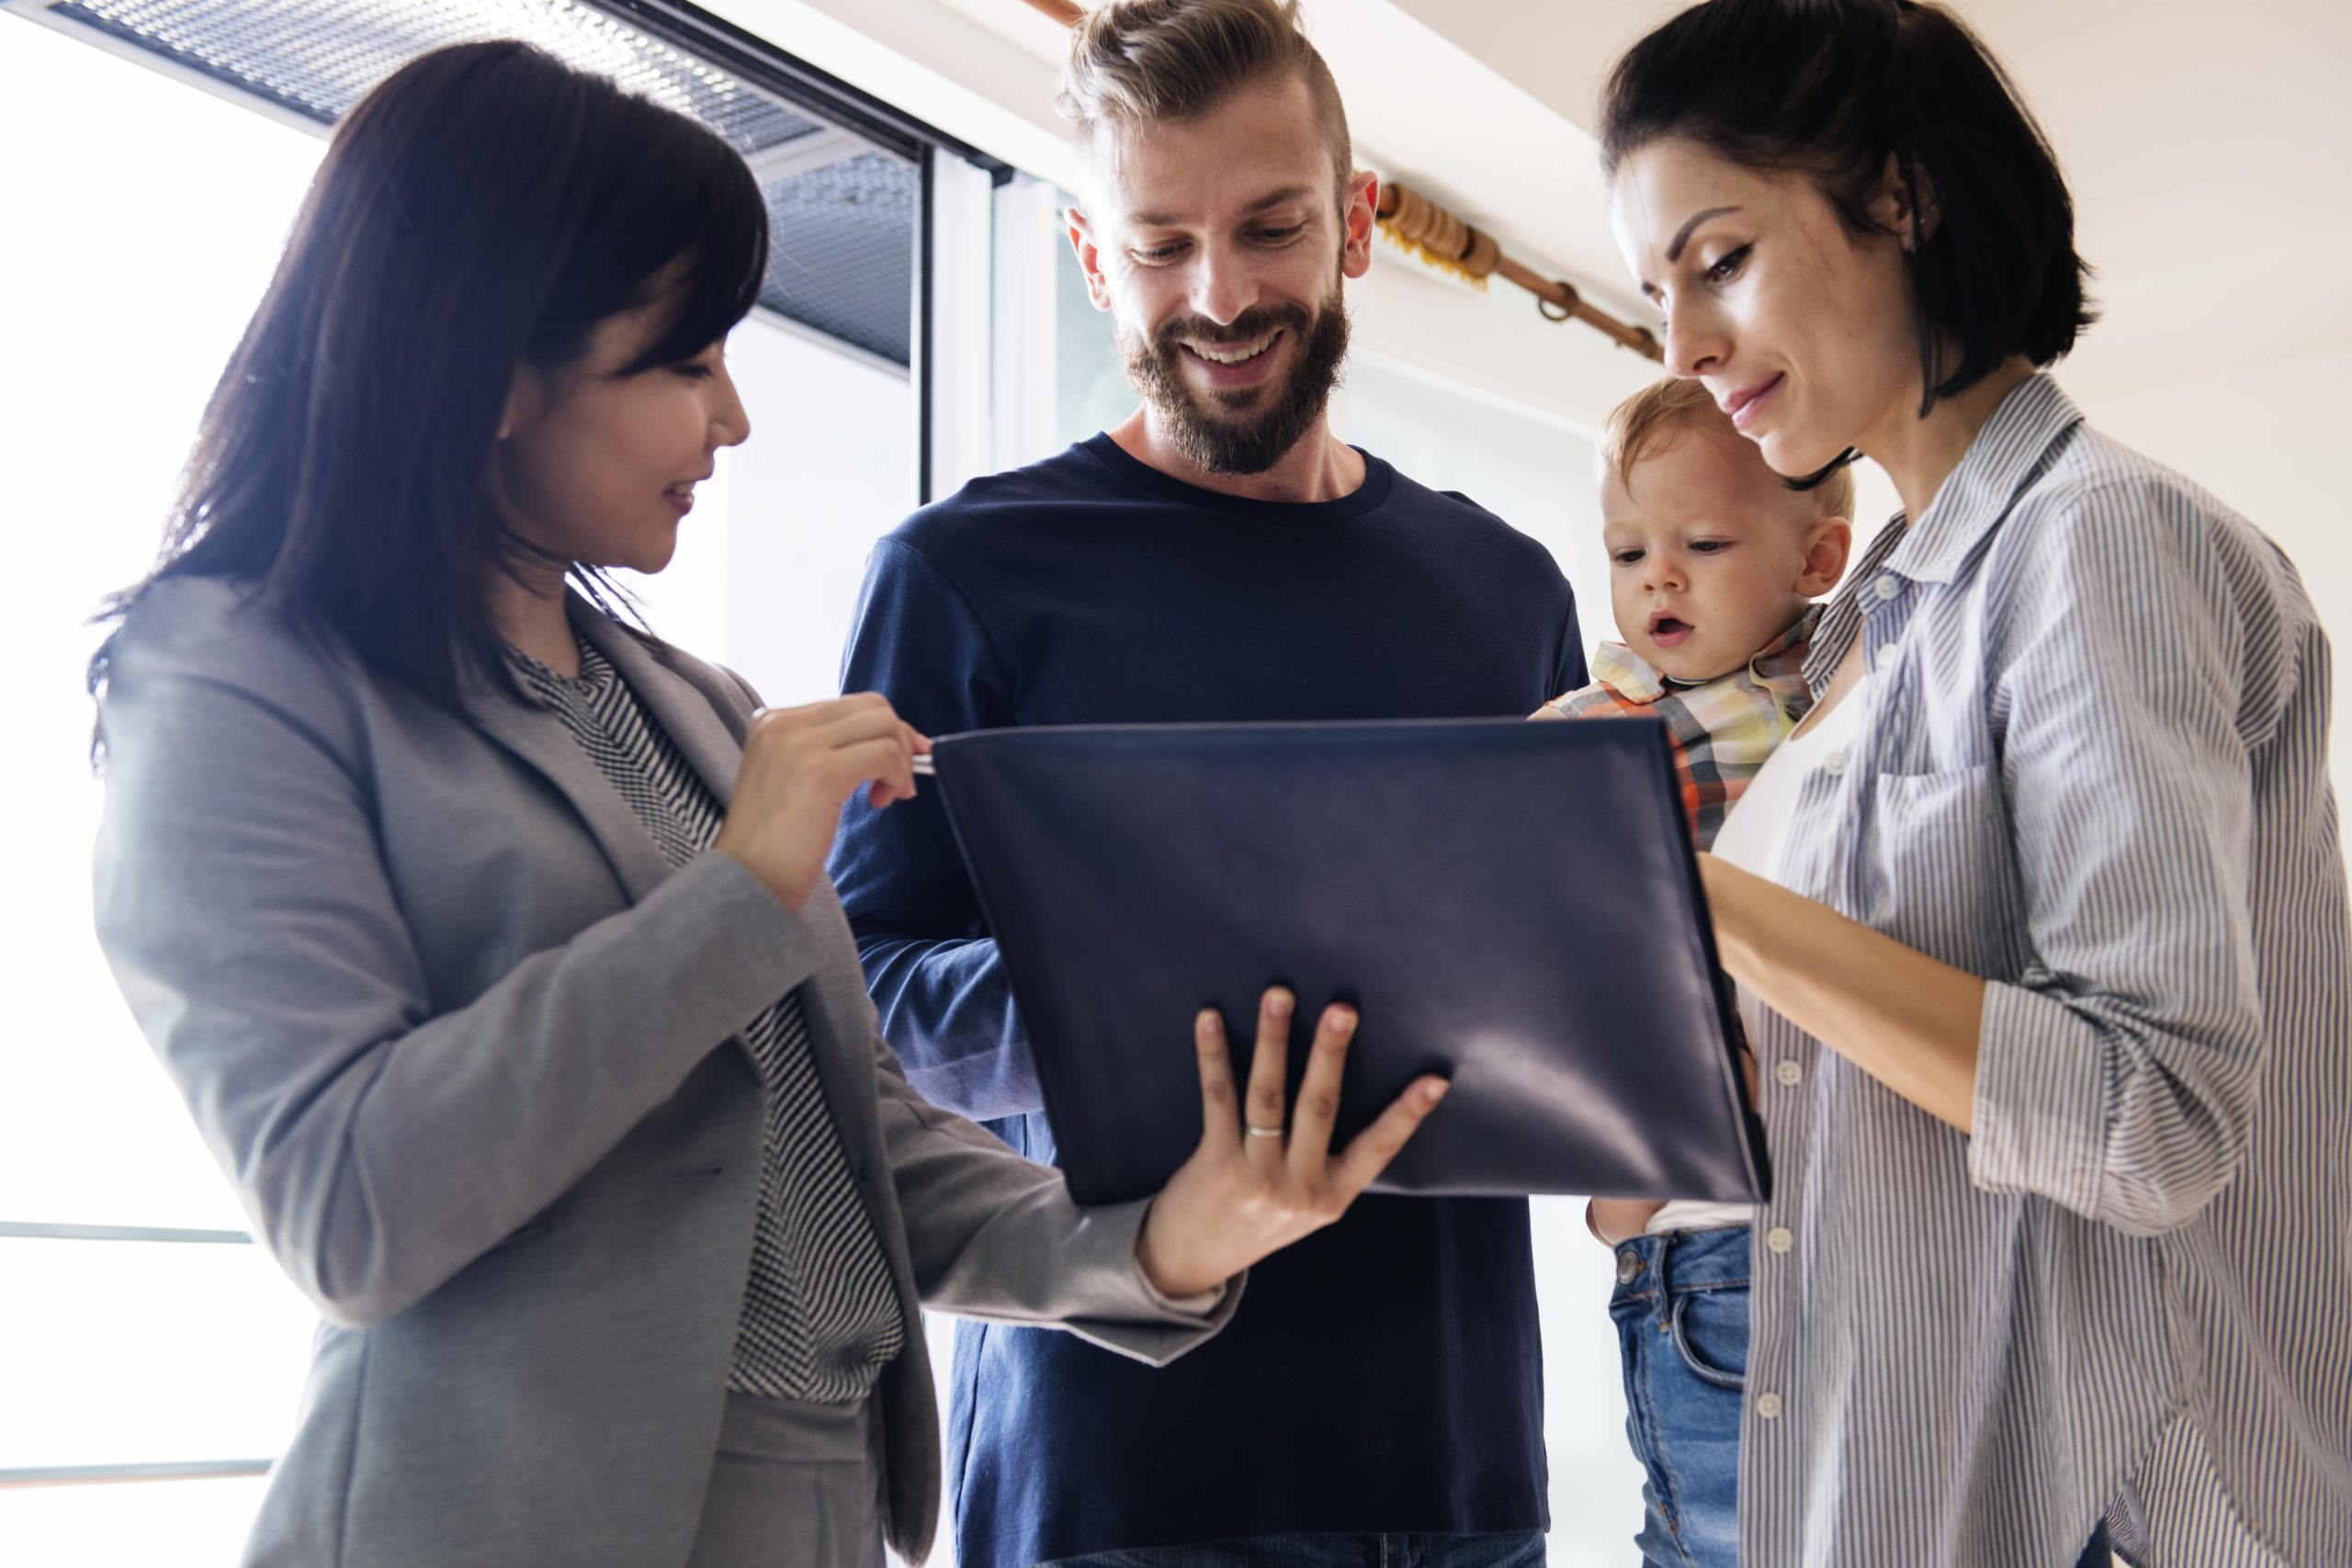 family learns about buying a new house while selling their own